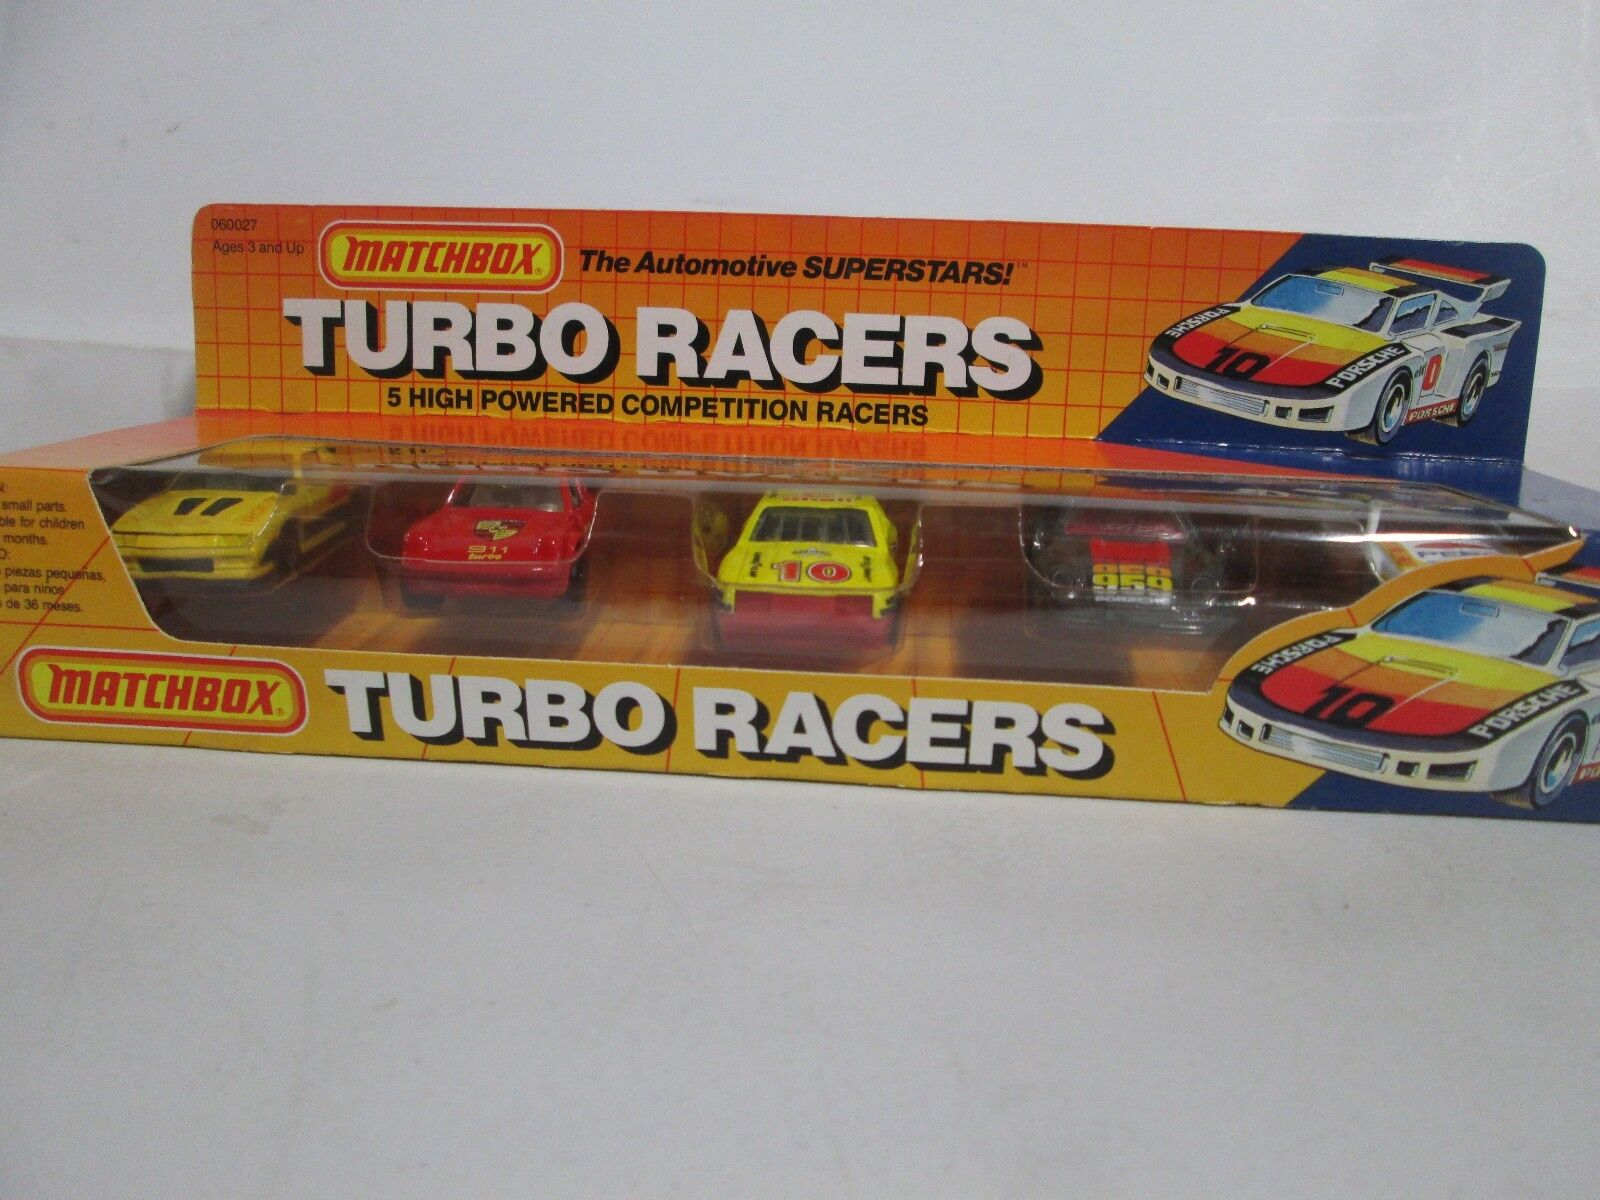 Matchbox Turbo Racers 5 High Powered Competition Racers